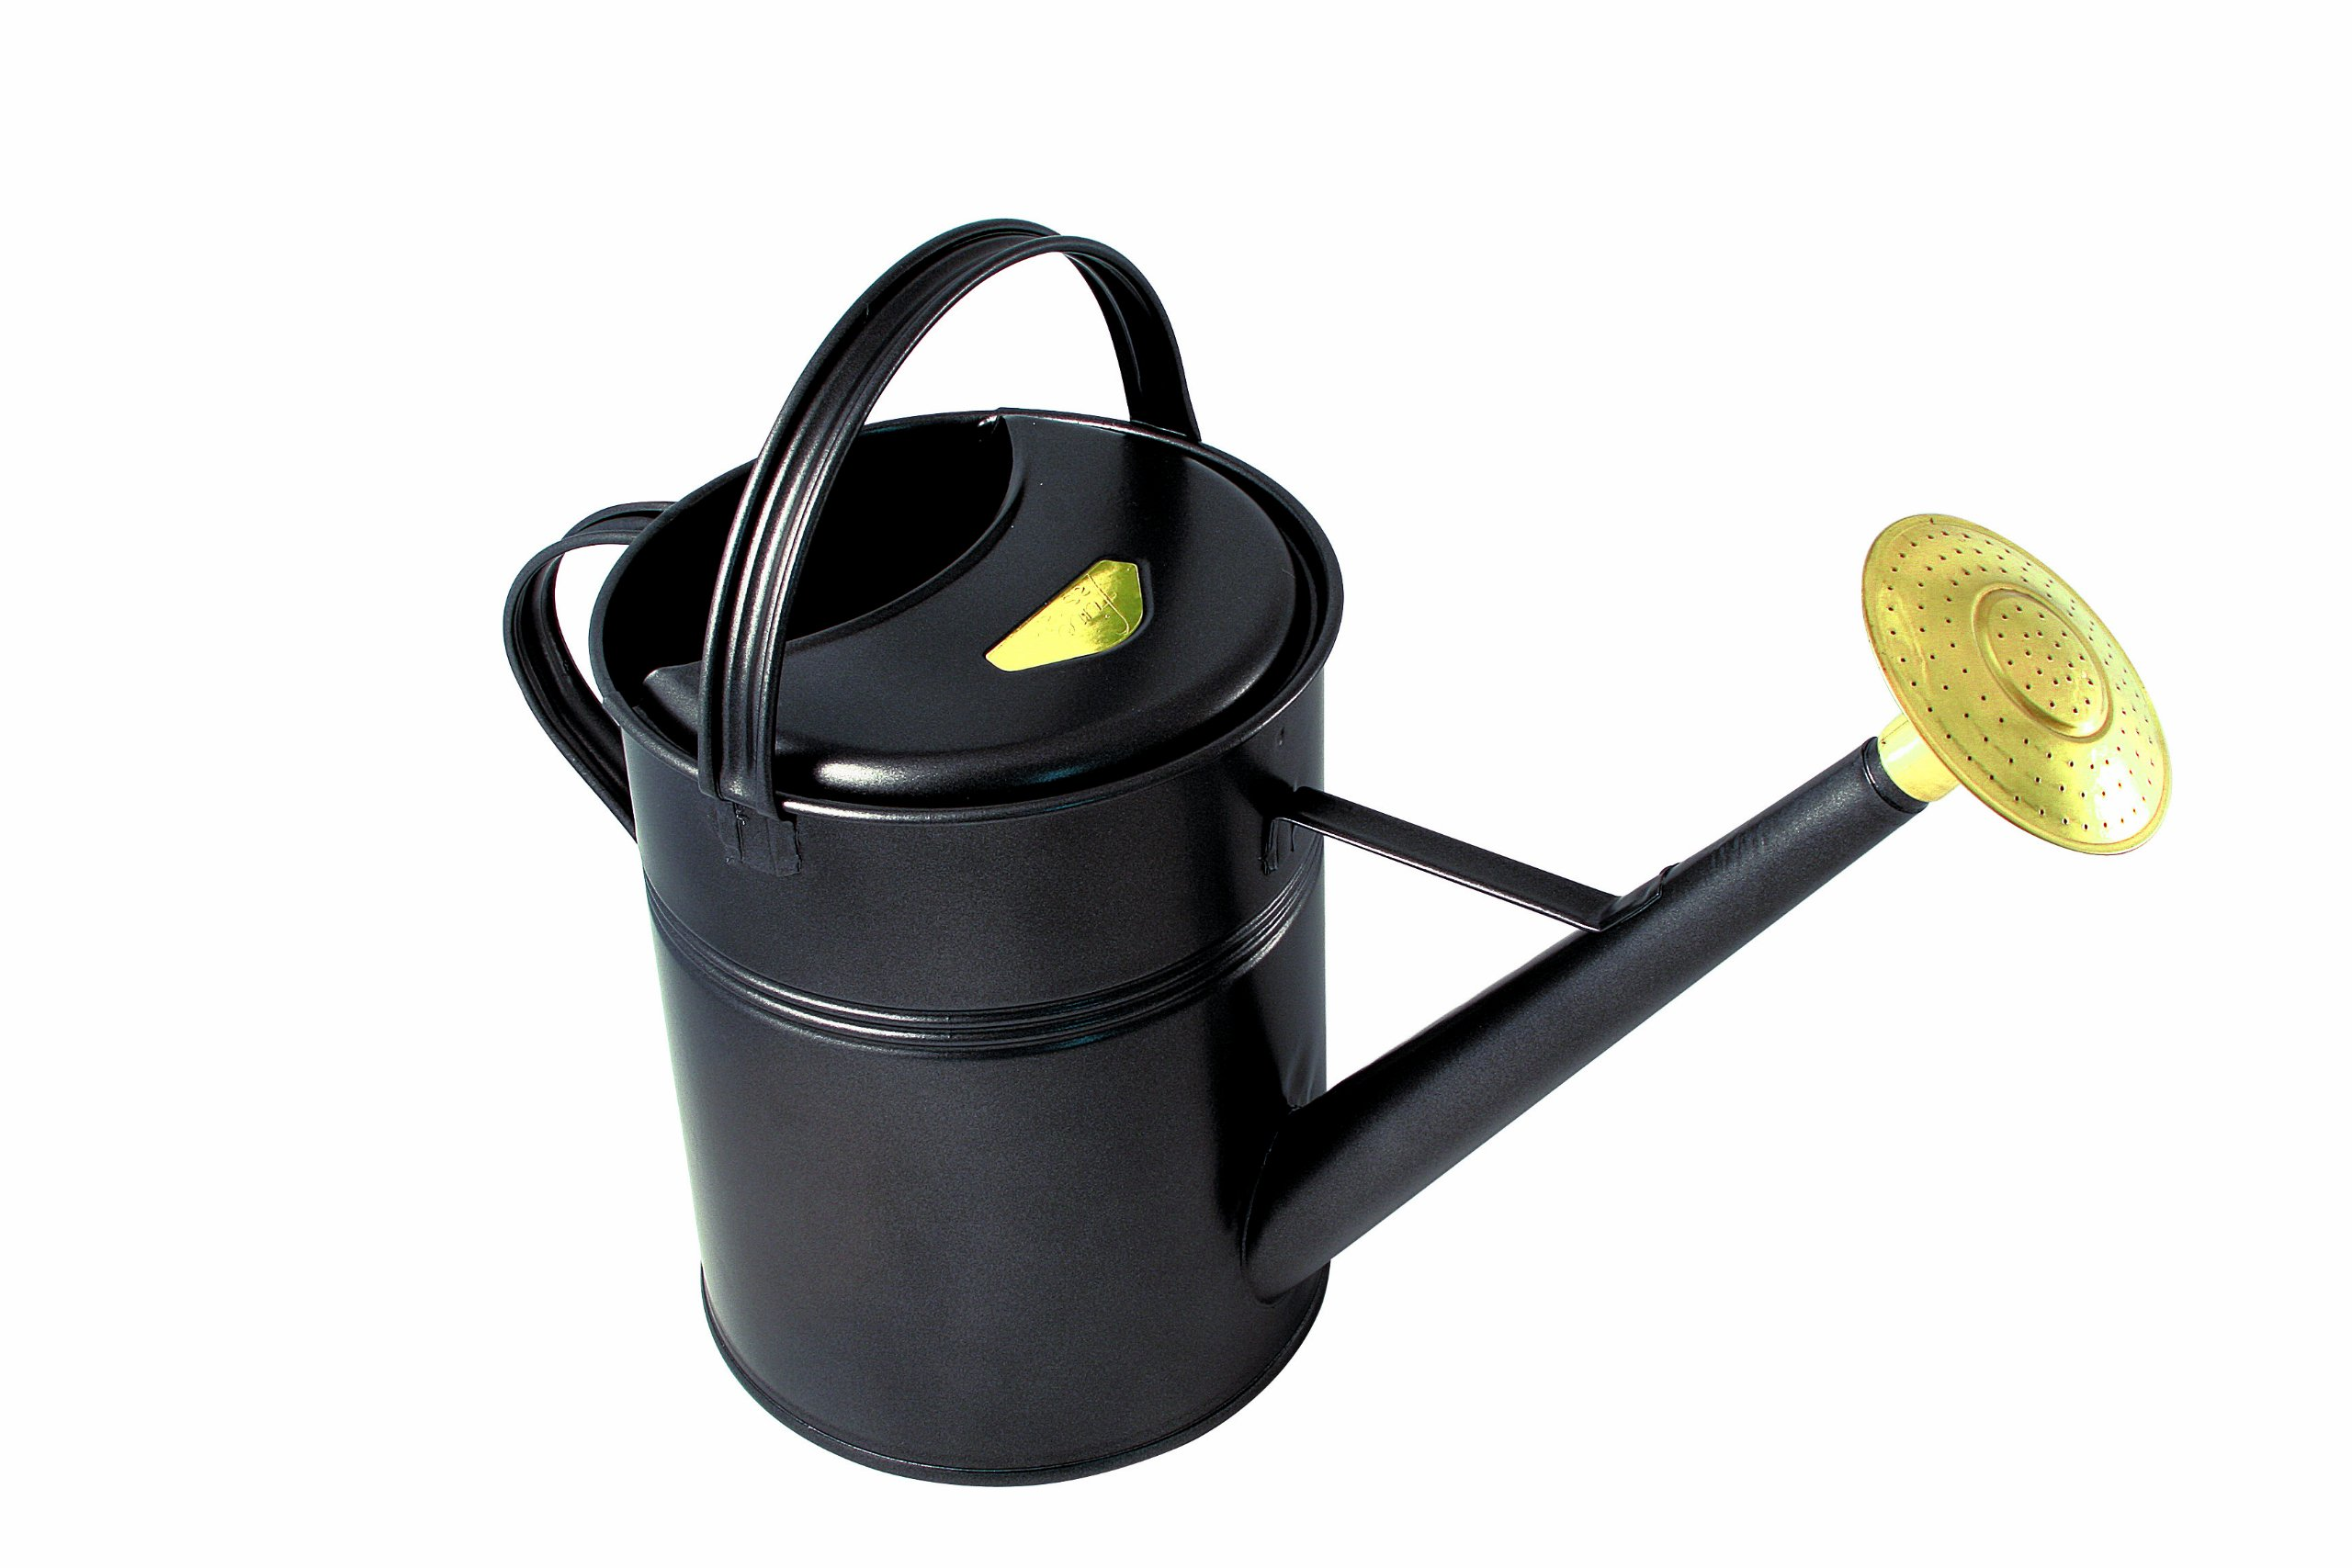 Haws Traditional Peter Rabbit Design Metal Watering Can, 2.3-Gallon/8.8-Liter, Black